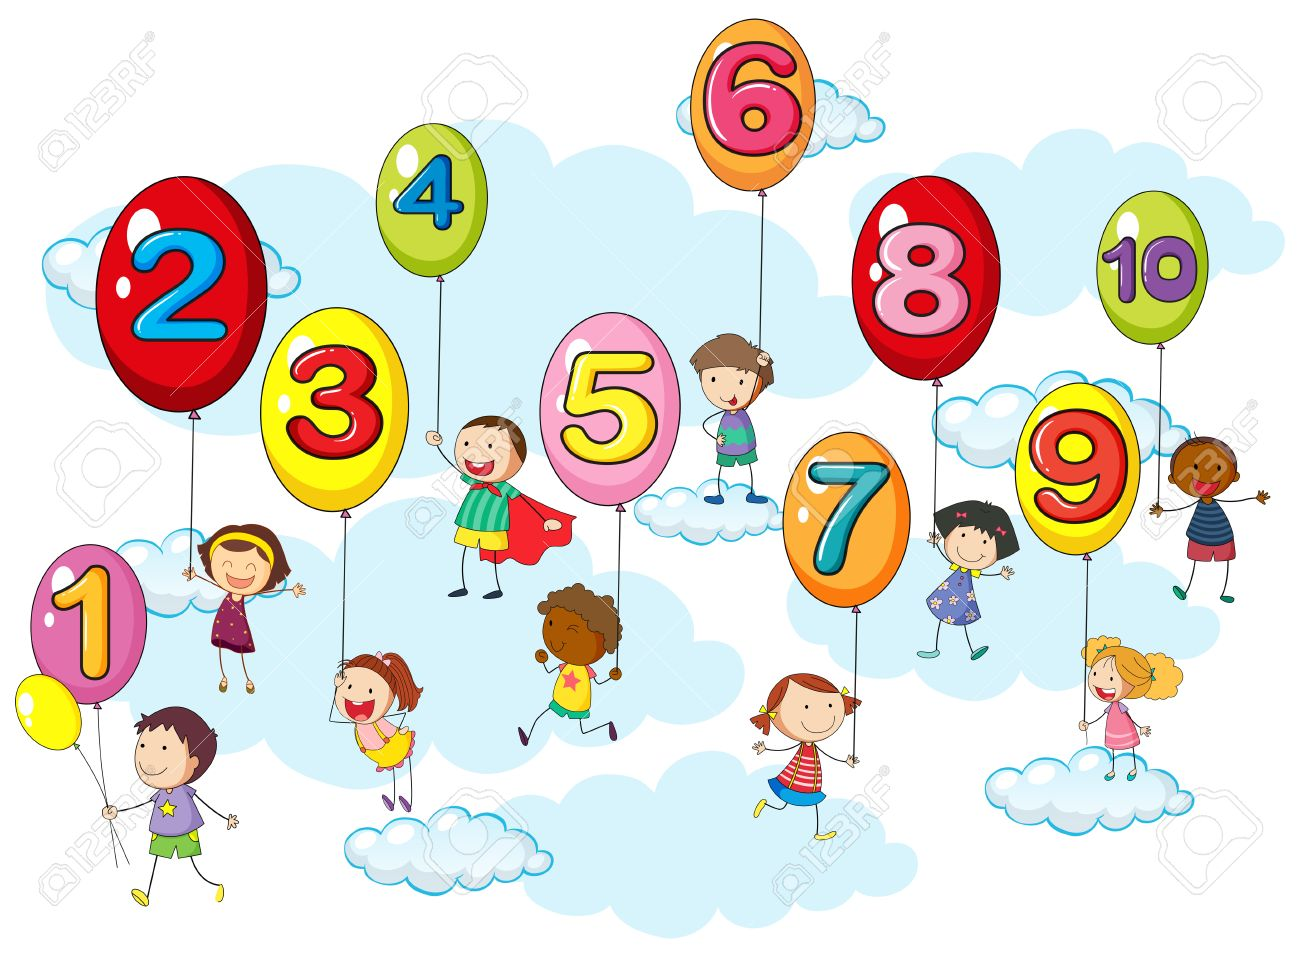 Counting numbers with kids on balloons illustration.